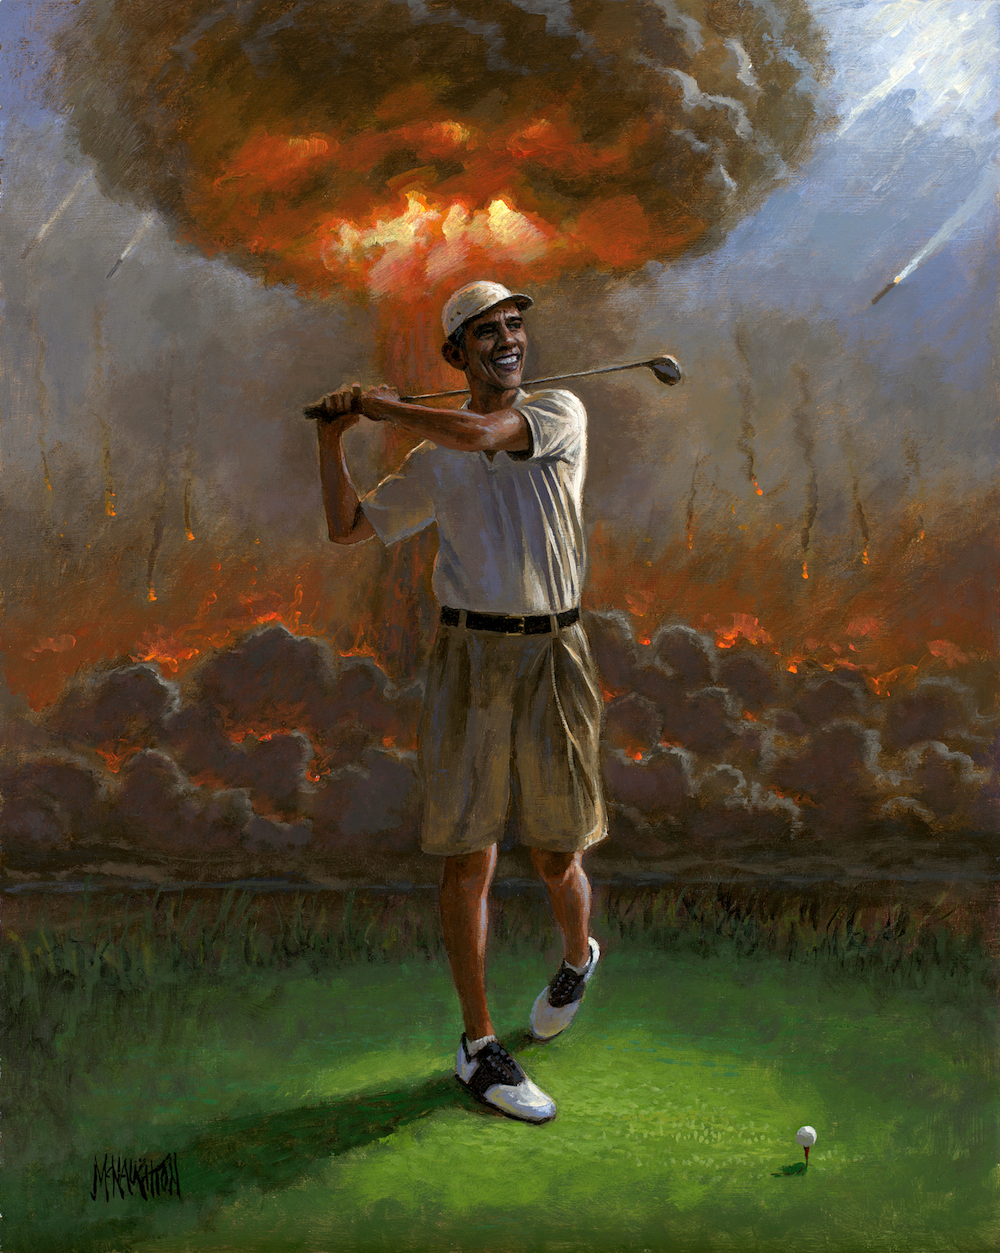 obama-foreign-policy-49973.1425102124.1280.1280.jpg